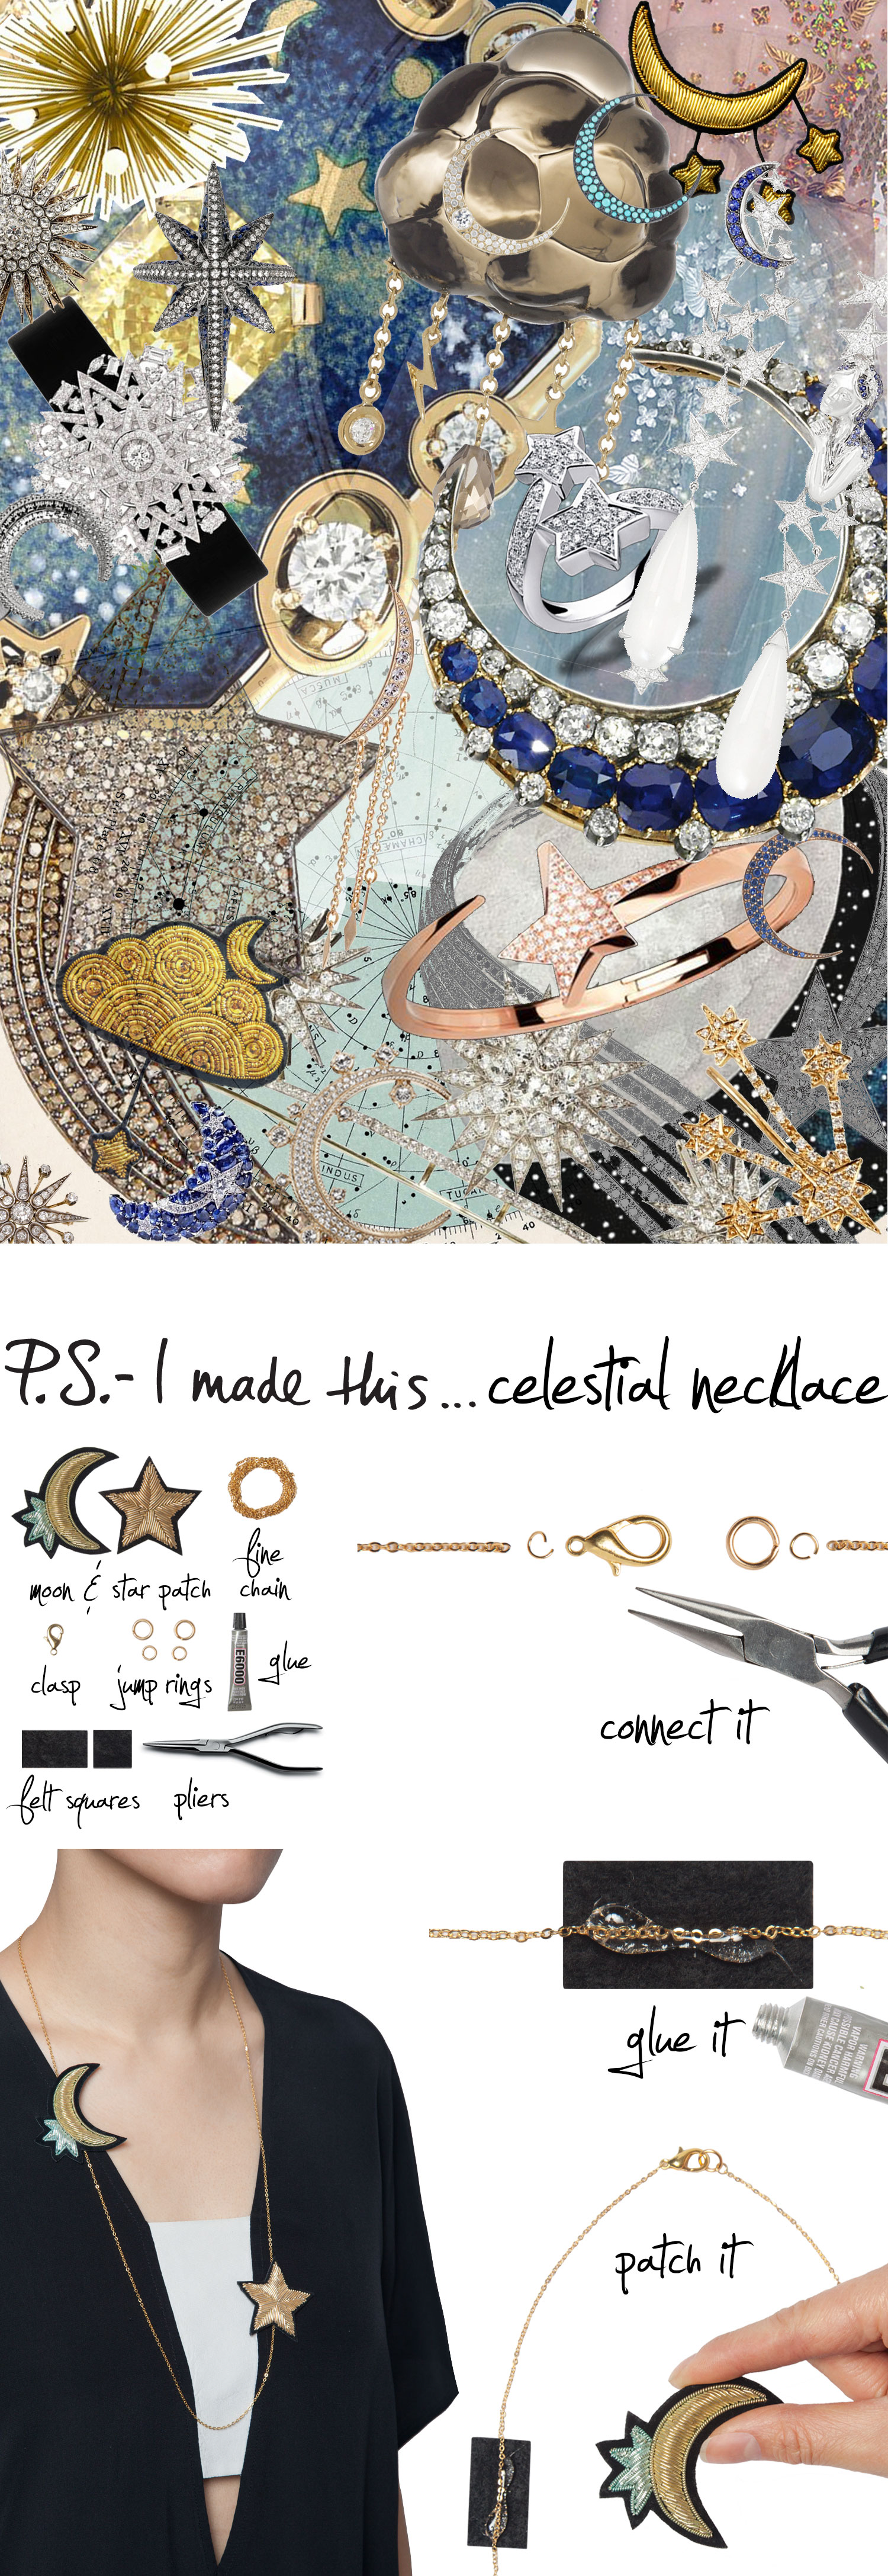 12.11.14_Celestial-Necklace-MERGED